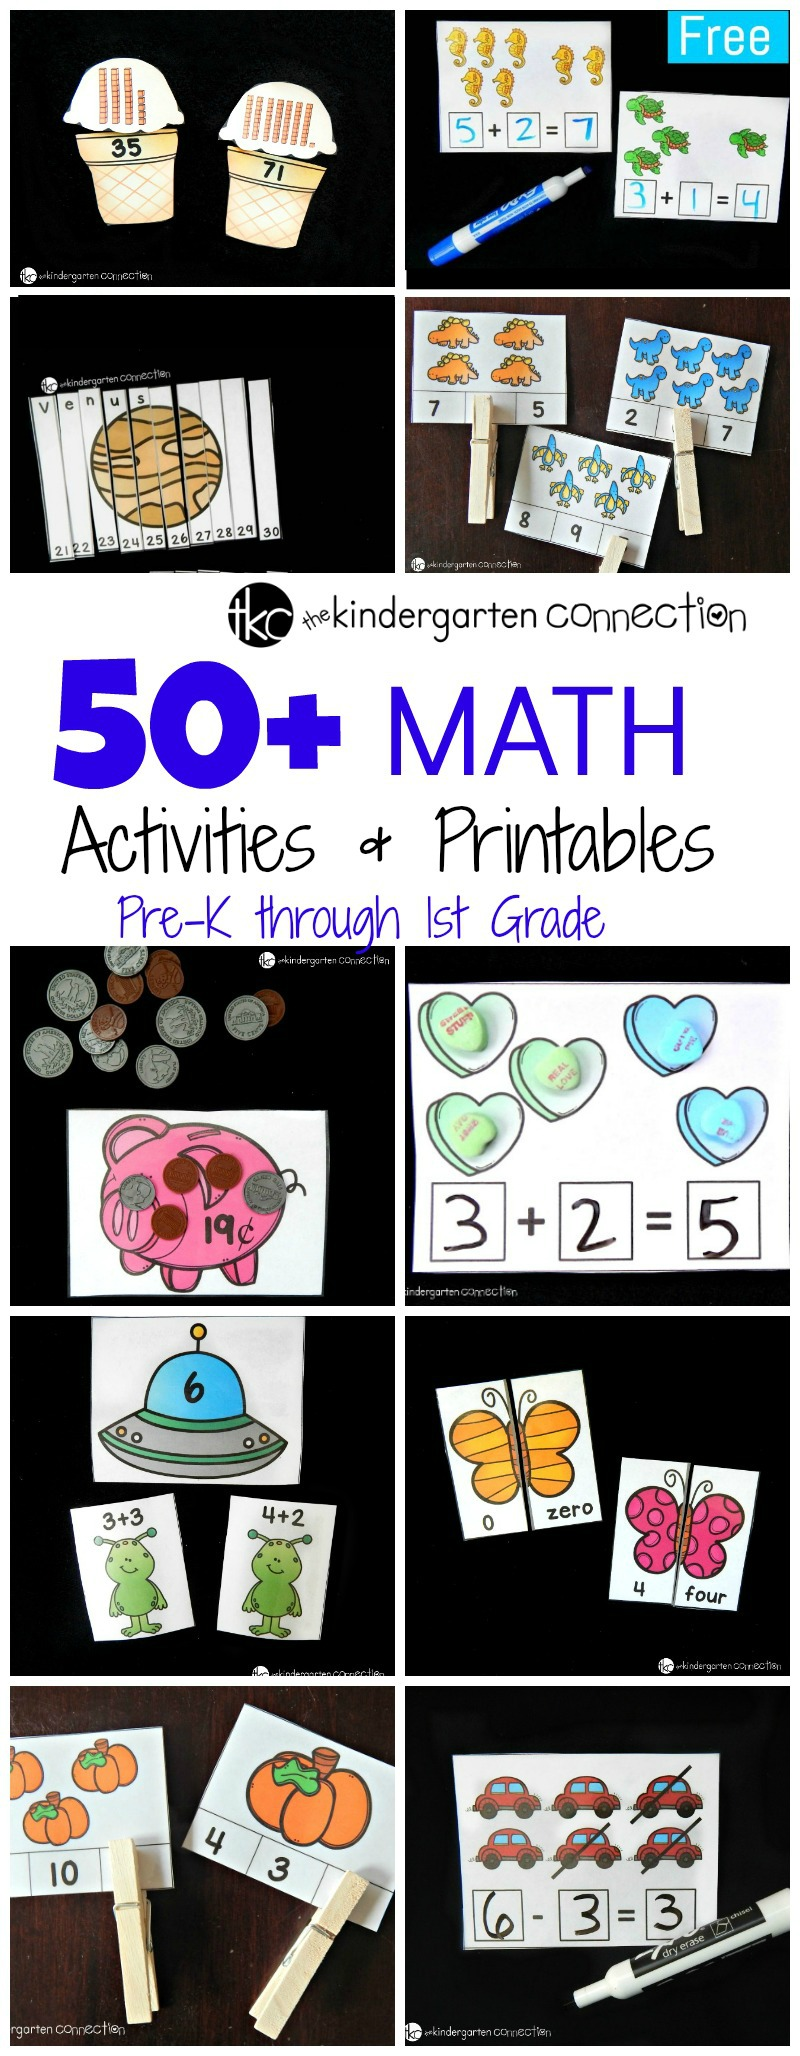 photograph about Printable Math Games for 1st Grade named 50+ Unbelievable Math Printables and Functions